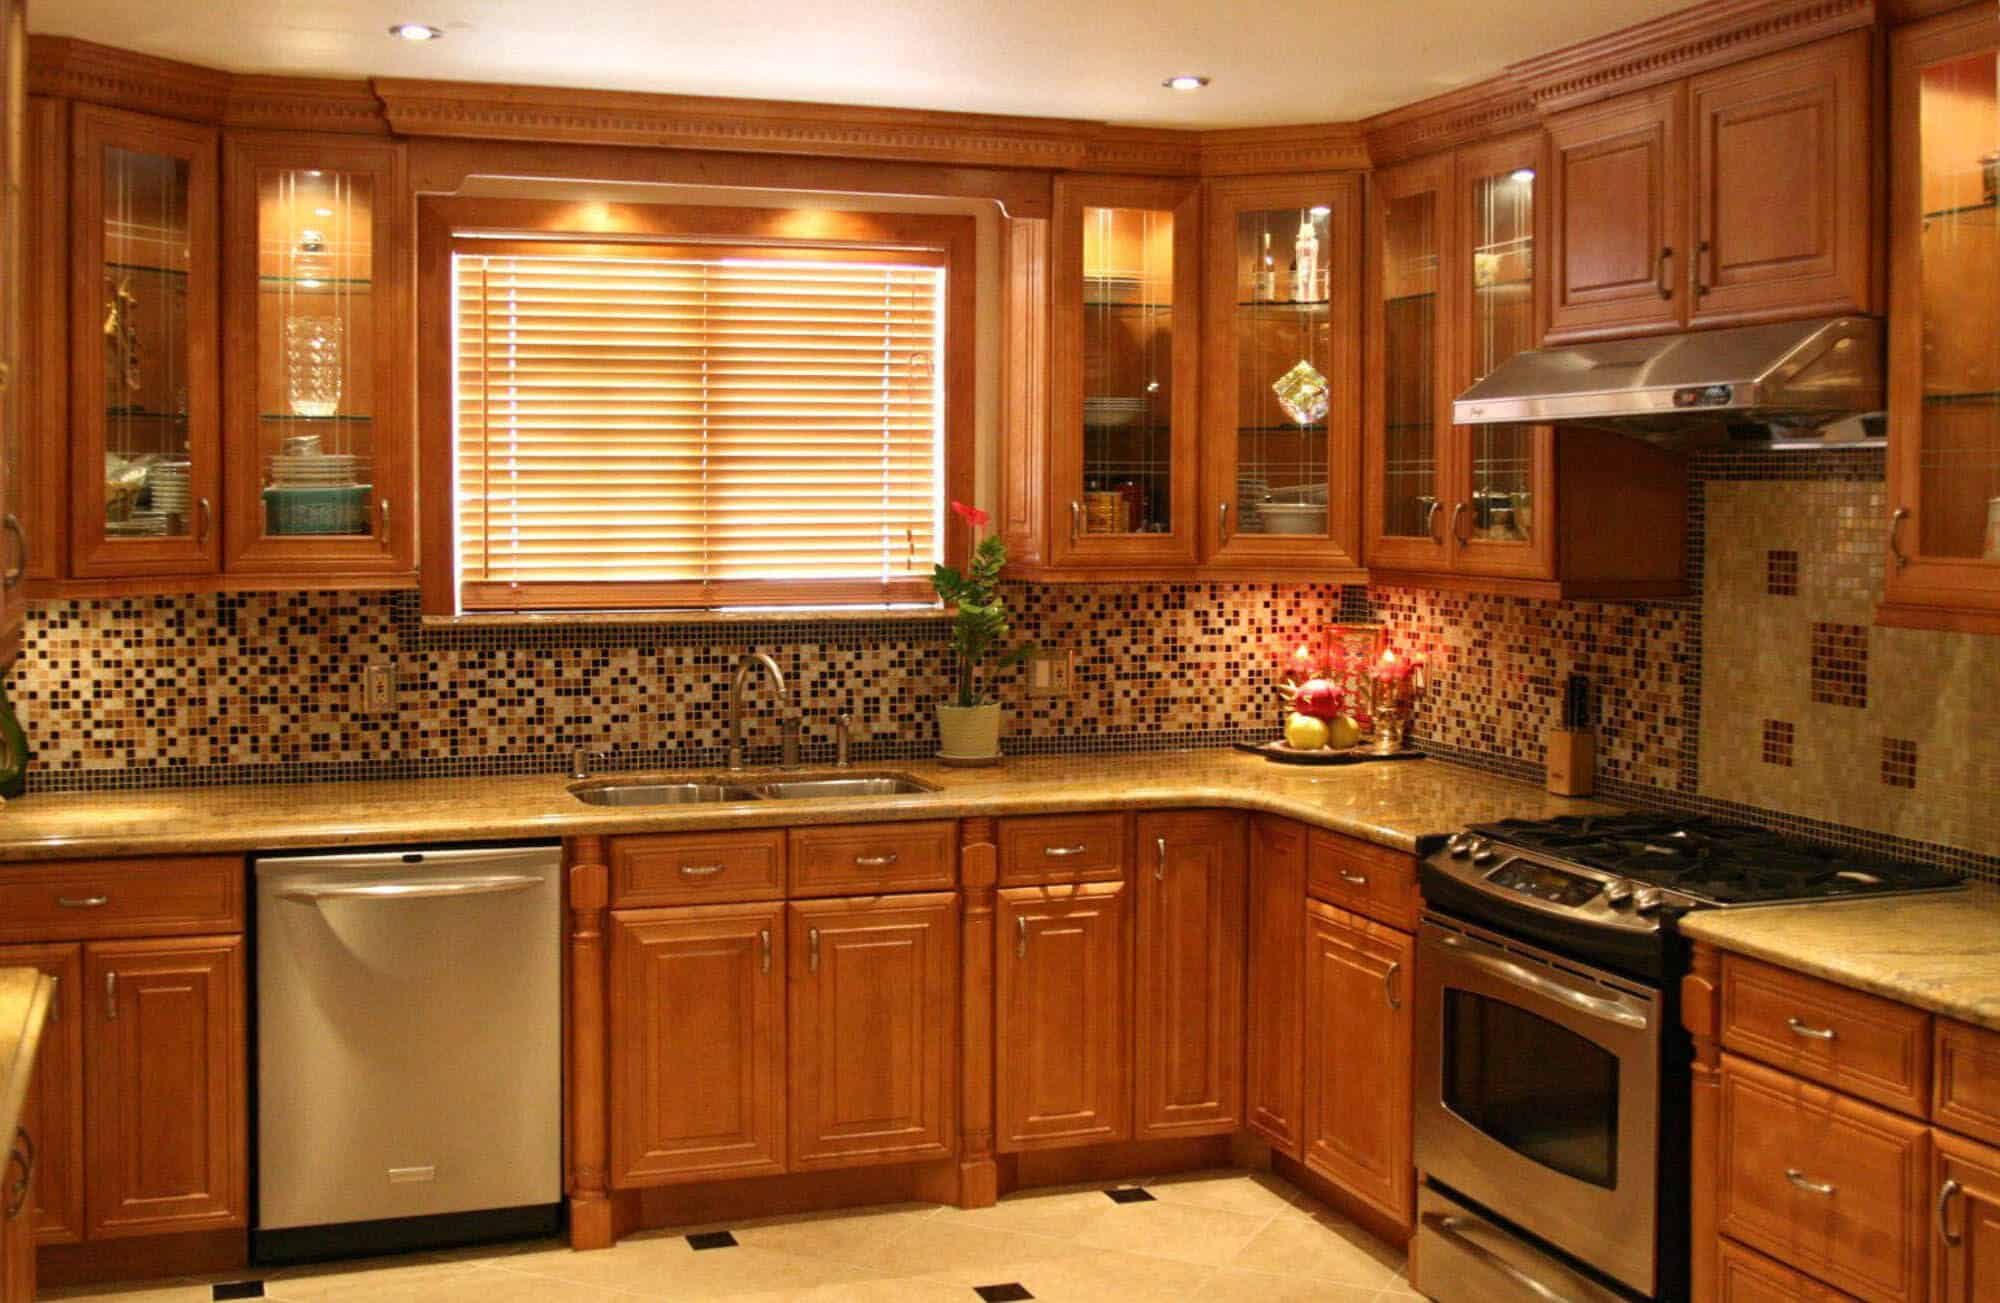 Kitchen Cabinet Trends To Avoid